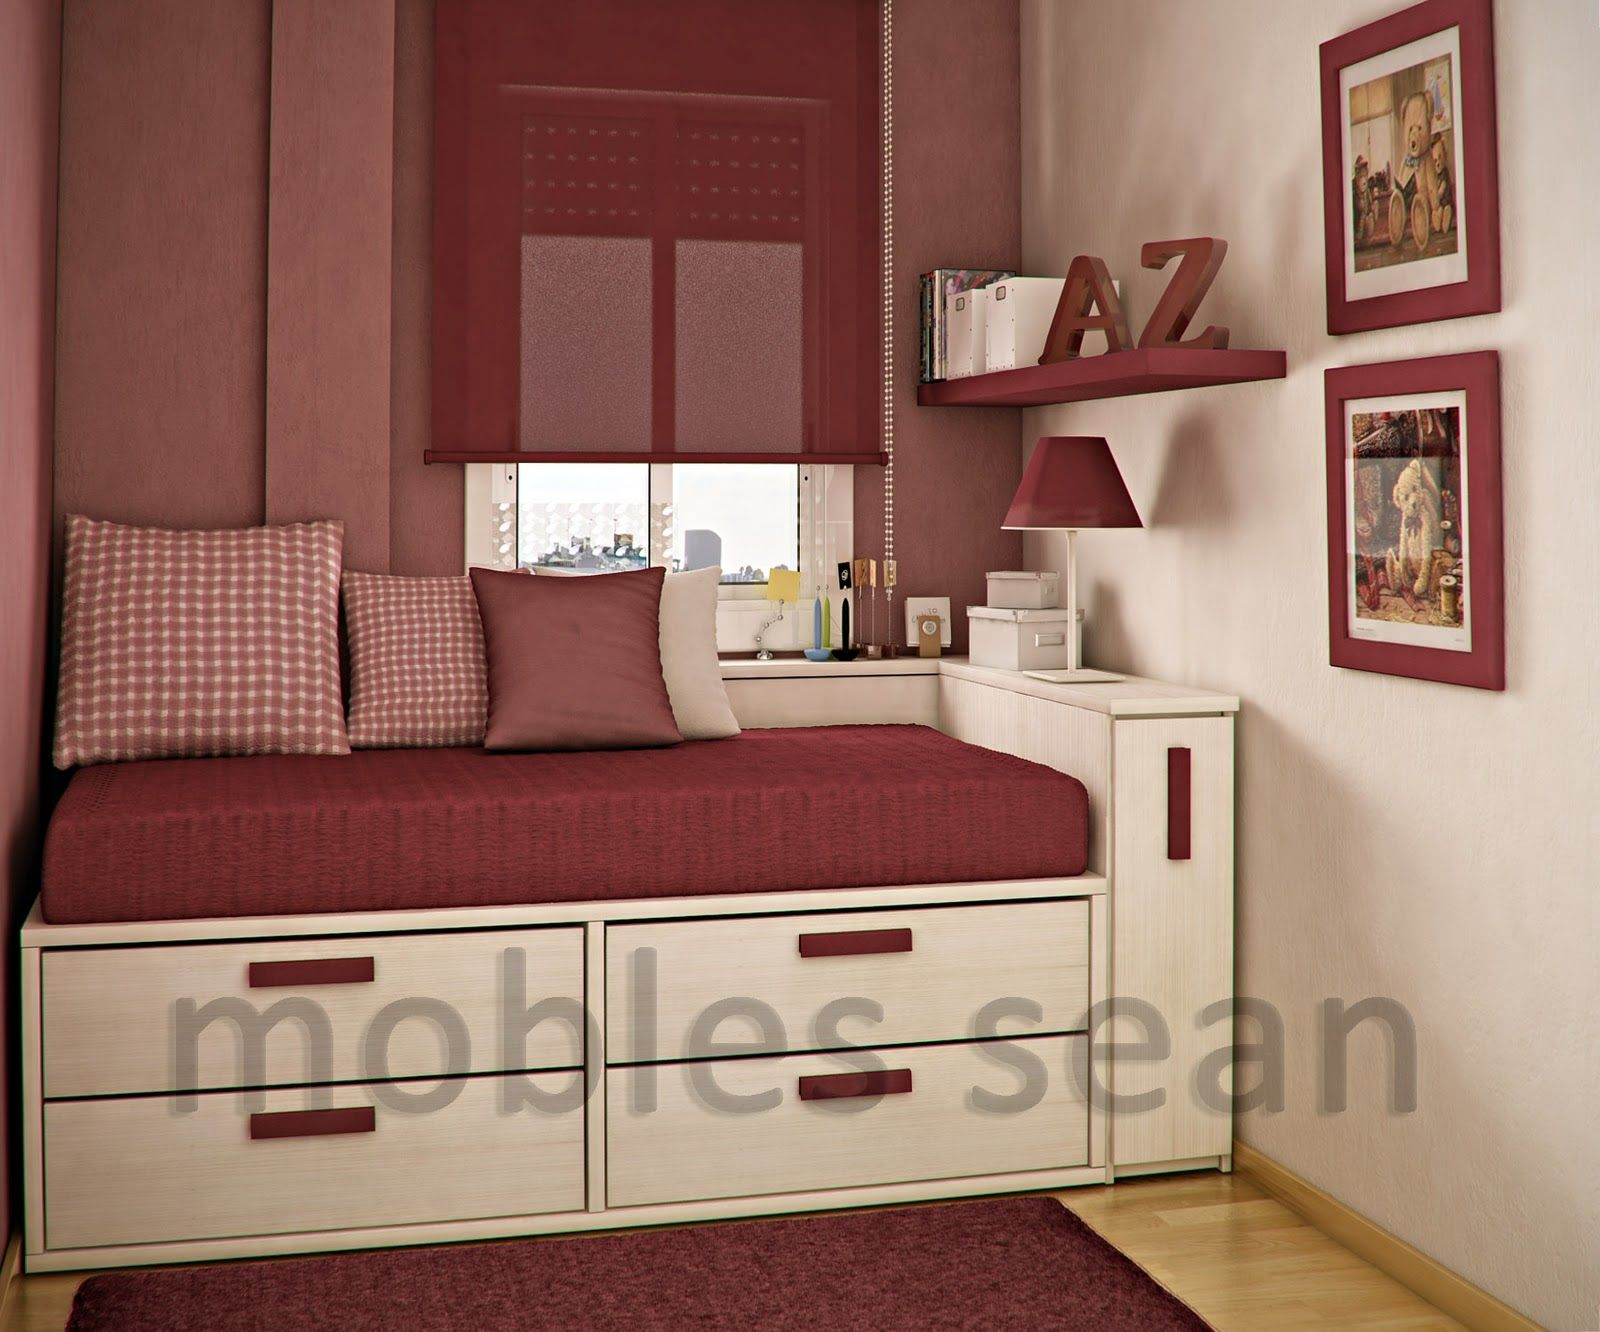 Space Saving Ideas for Small Children Rooms by Sergi Mengot - Image ...